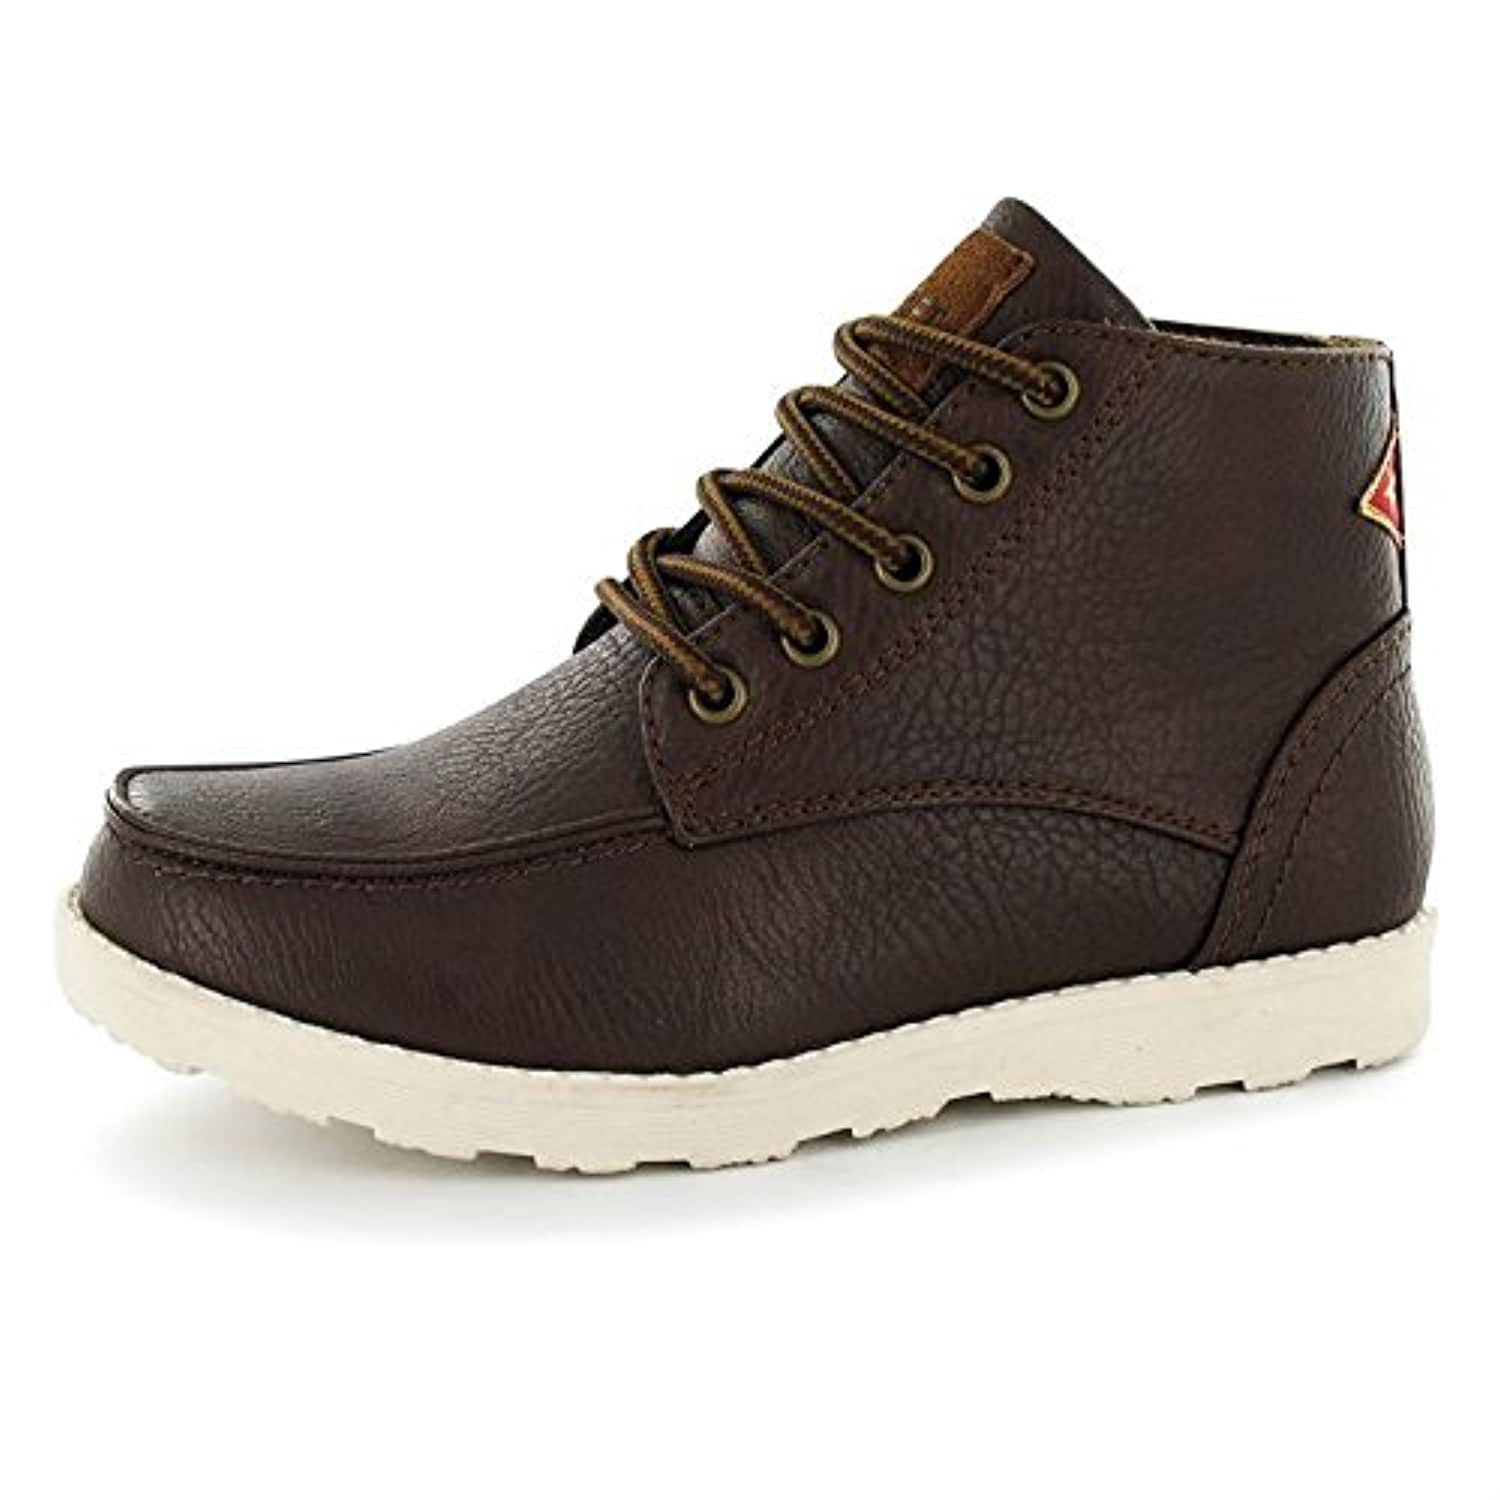 Soviet Kids Boys Rewind Rugged Boots Lace Up Stitch Panels Hi Top Casual Shoes Brown UK 2 (34)